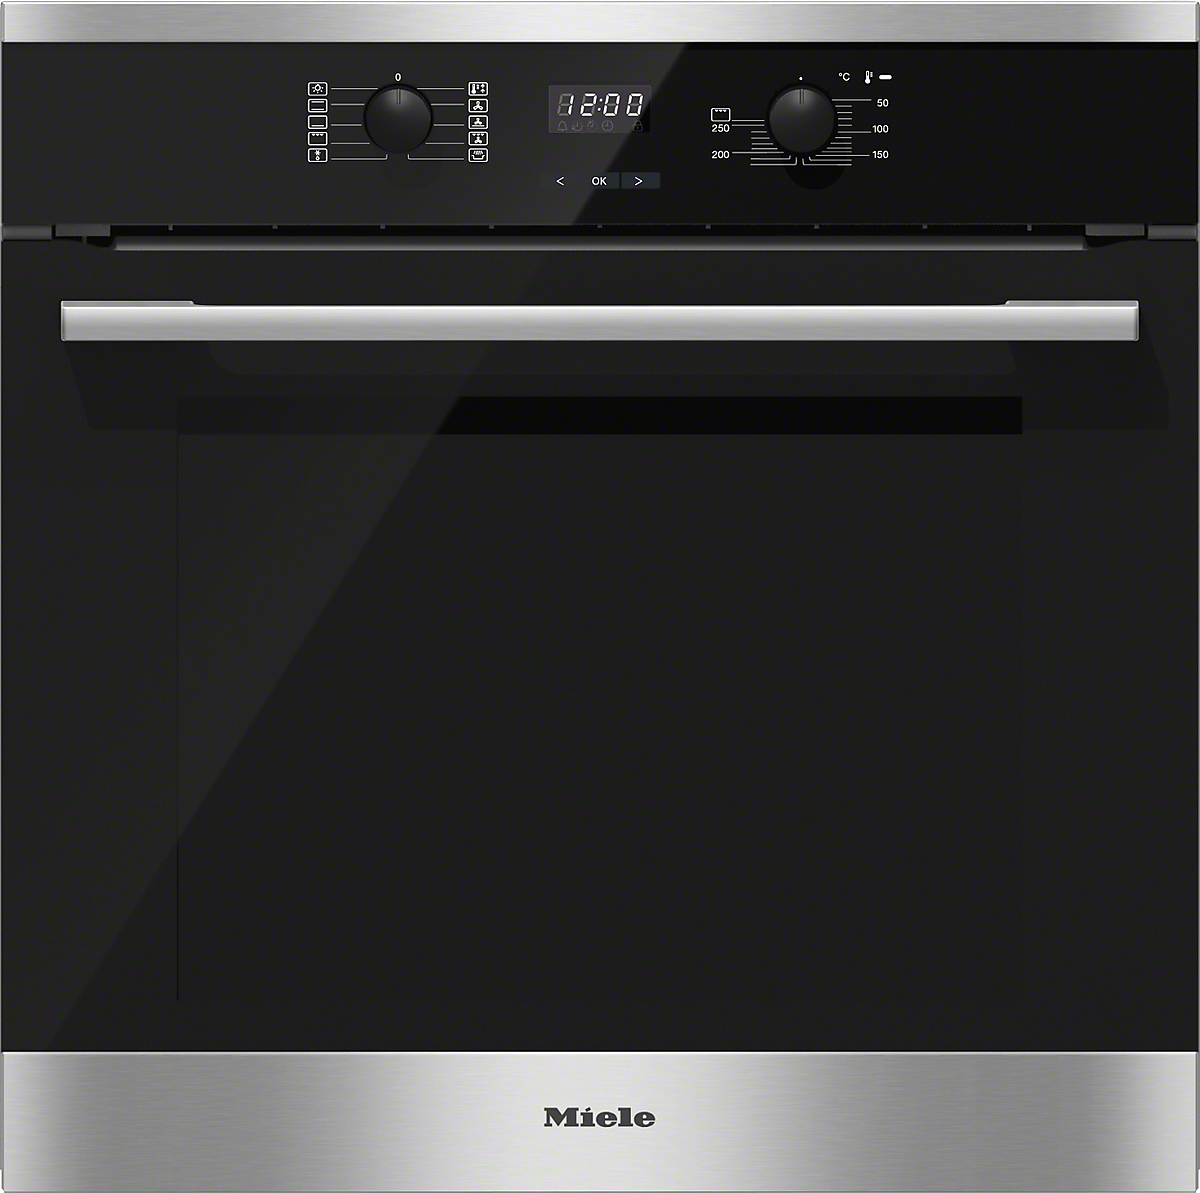 miele einbau backofen h2561 b edelstahl cleansteel vs elektro. Black Bedroom Furniture Sets. Home Design Ideas